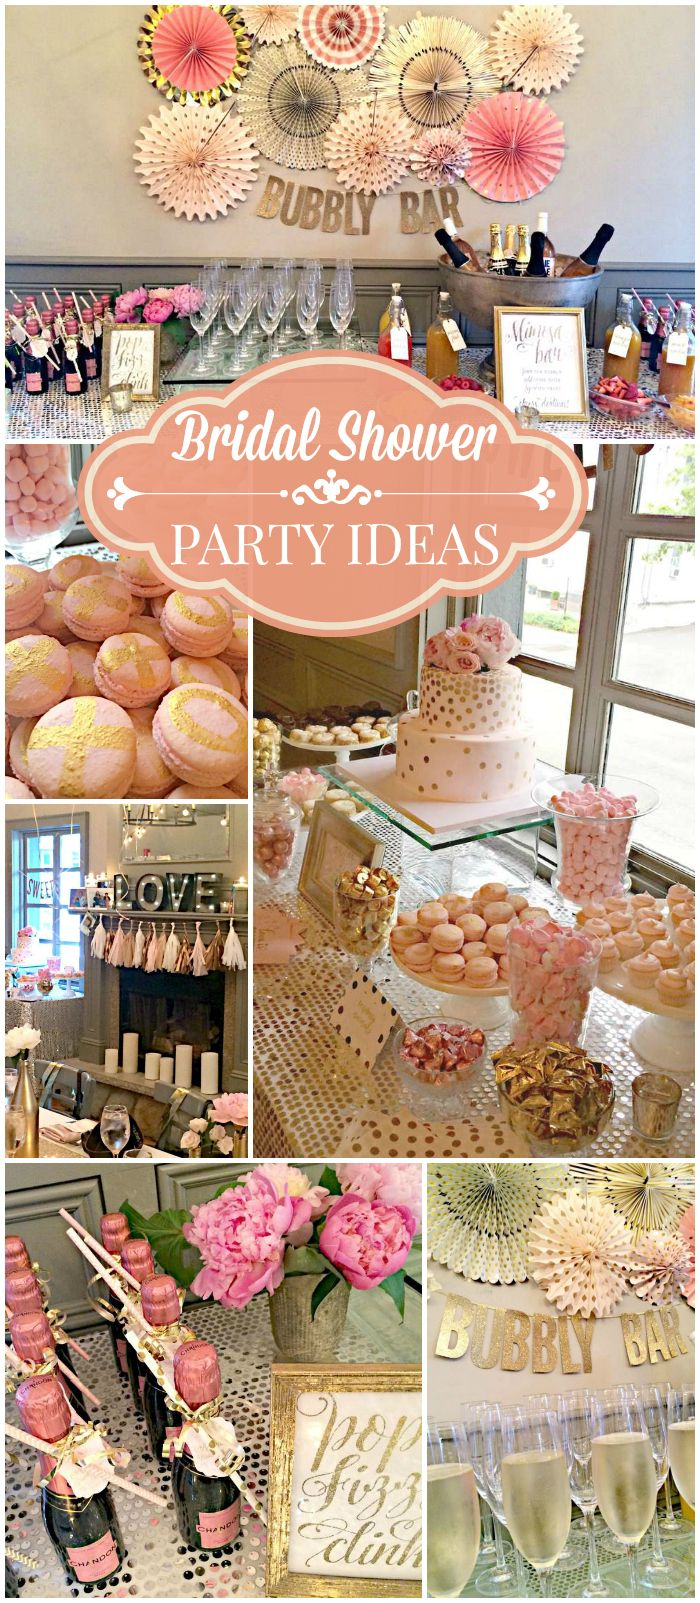 25 best bridal shower images on pinterest cookies decorated bubbly bar blush pink gold bridalwedding shower amandas bubbly bar bridal shower junglespirit Gallery